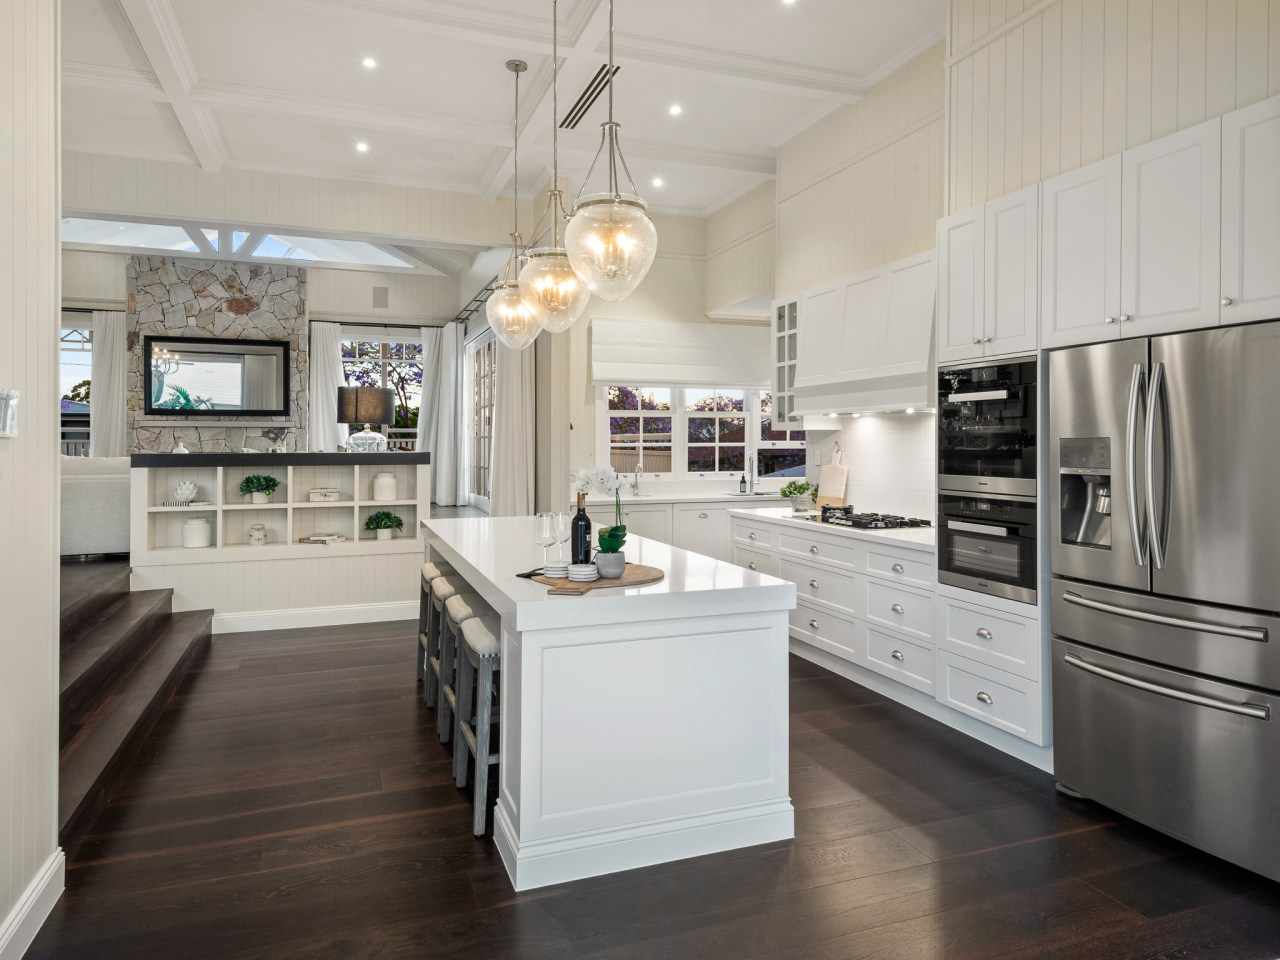 High, ornate ceilings and beadboard wall finishes in architecture, cabinetry, countertop, benchtop, timber floor, flooring, hardwood, interior design, kitchen, light fixture, lighting, refrigerator, wood, wood flooring, cabinetry, Baahouse + Baahouse Architecture